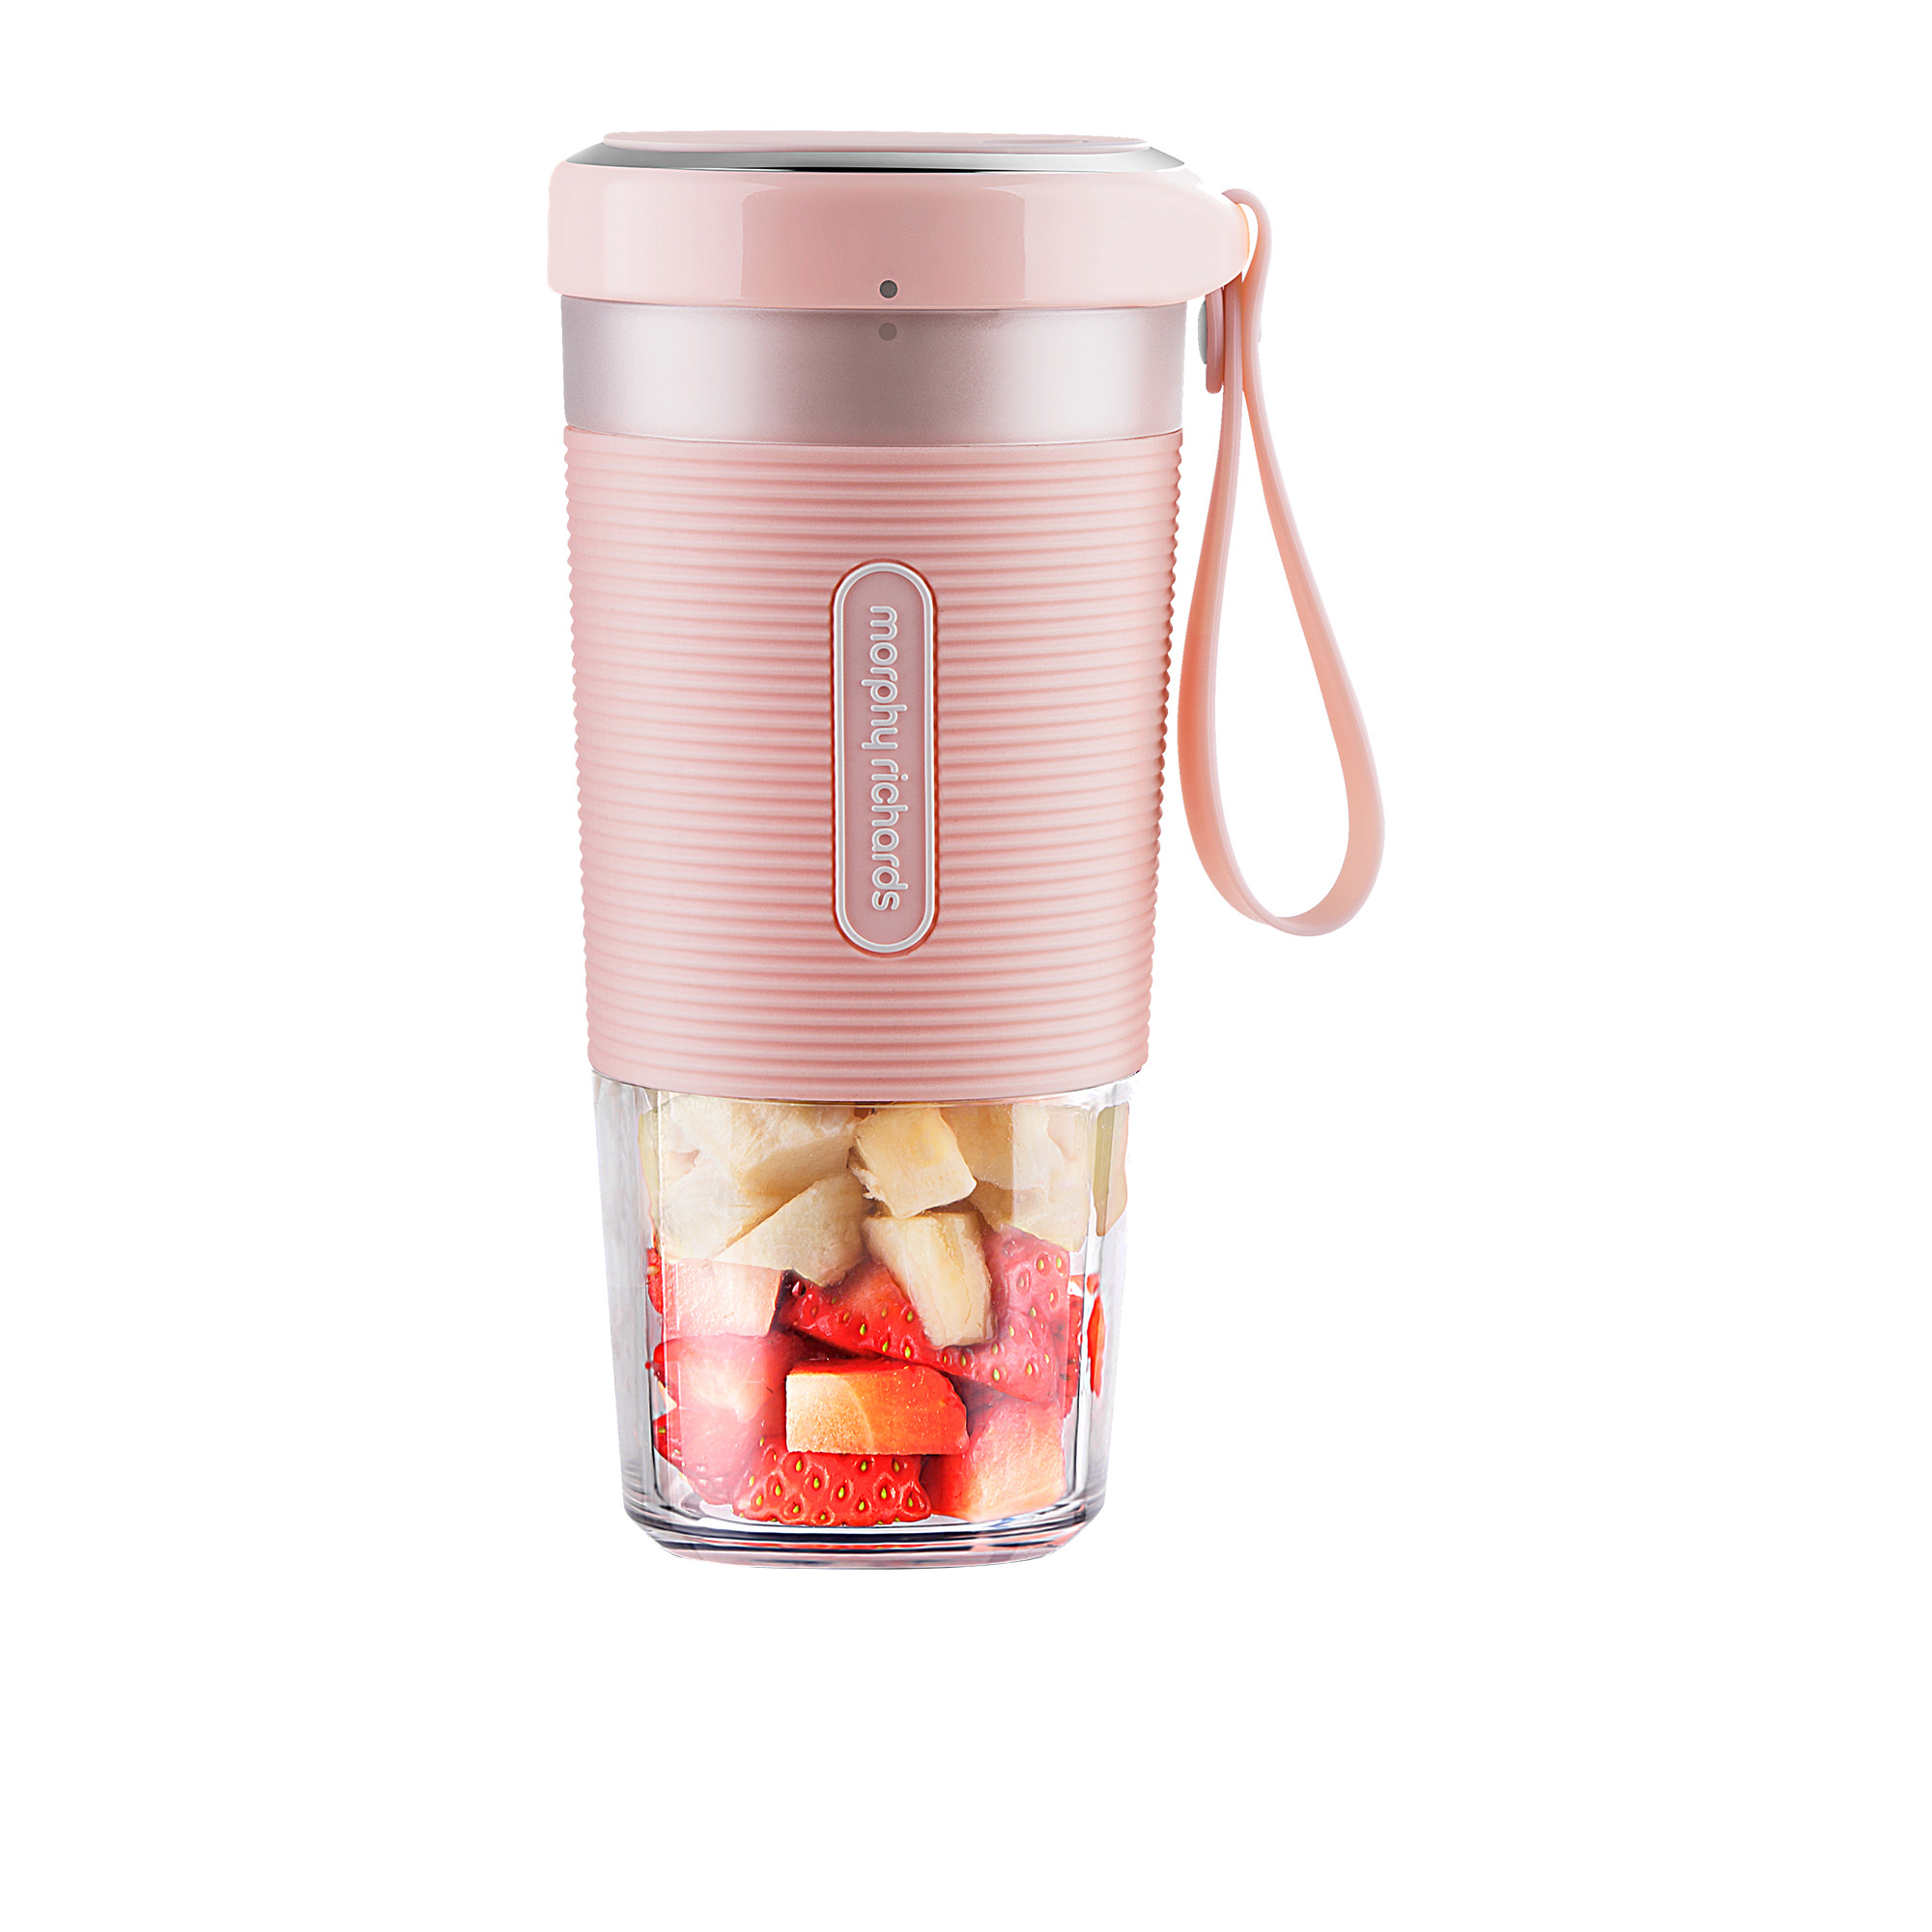 Morphy Richards Personal Blender 300ml Pink